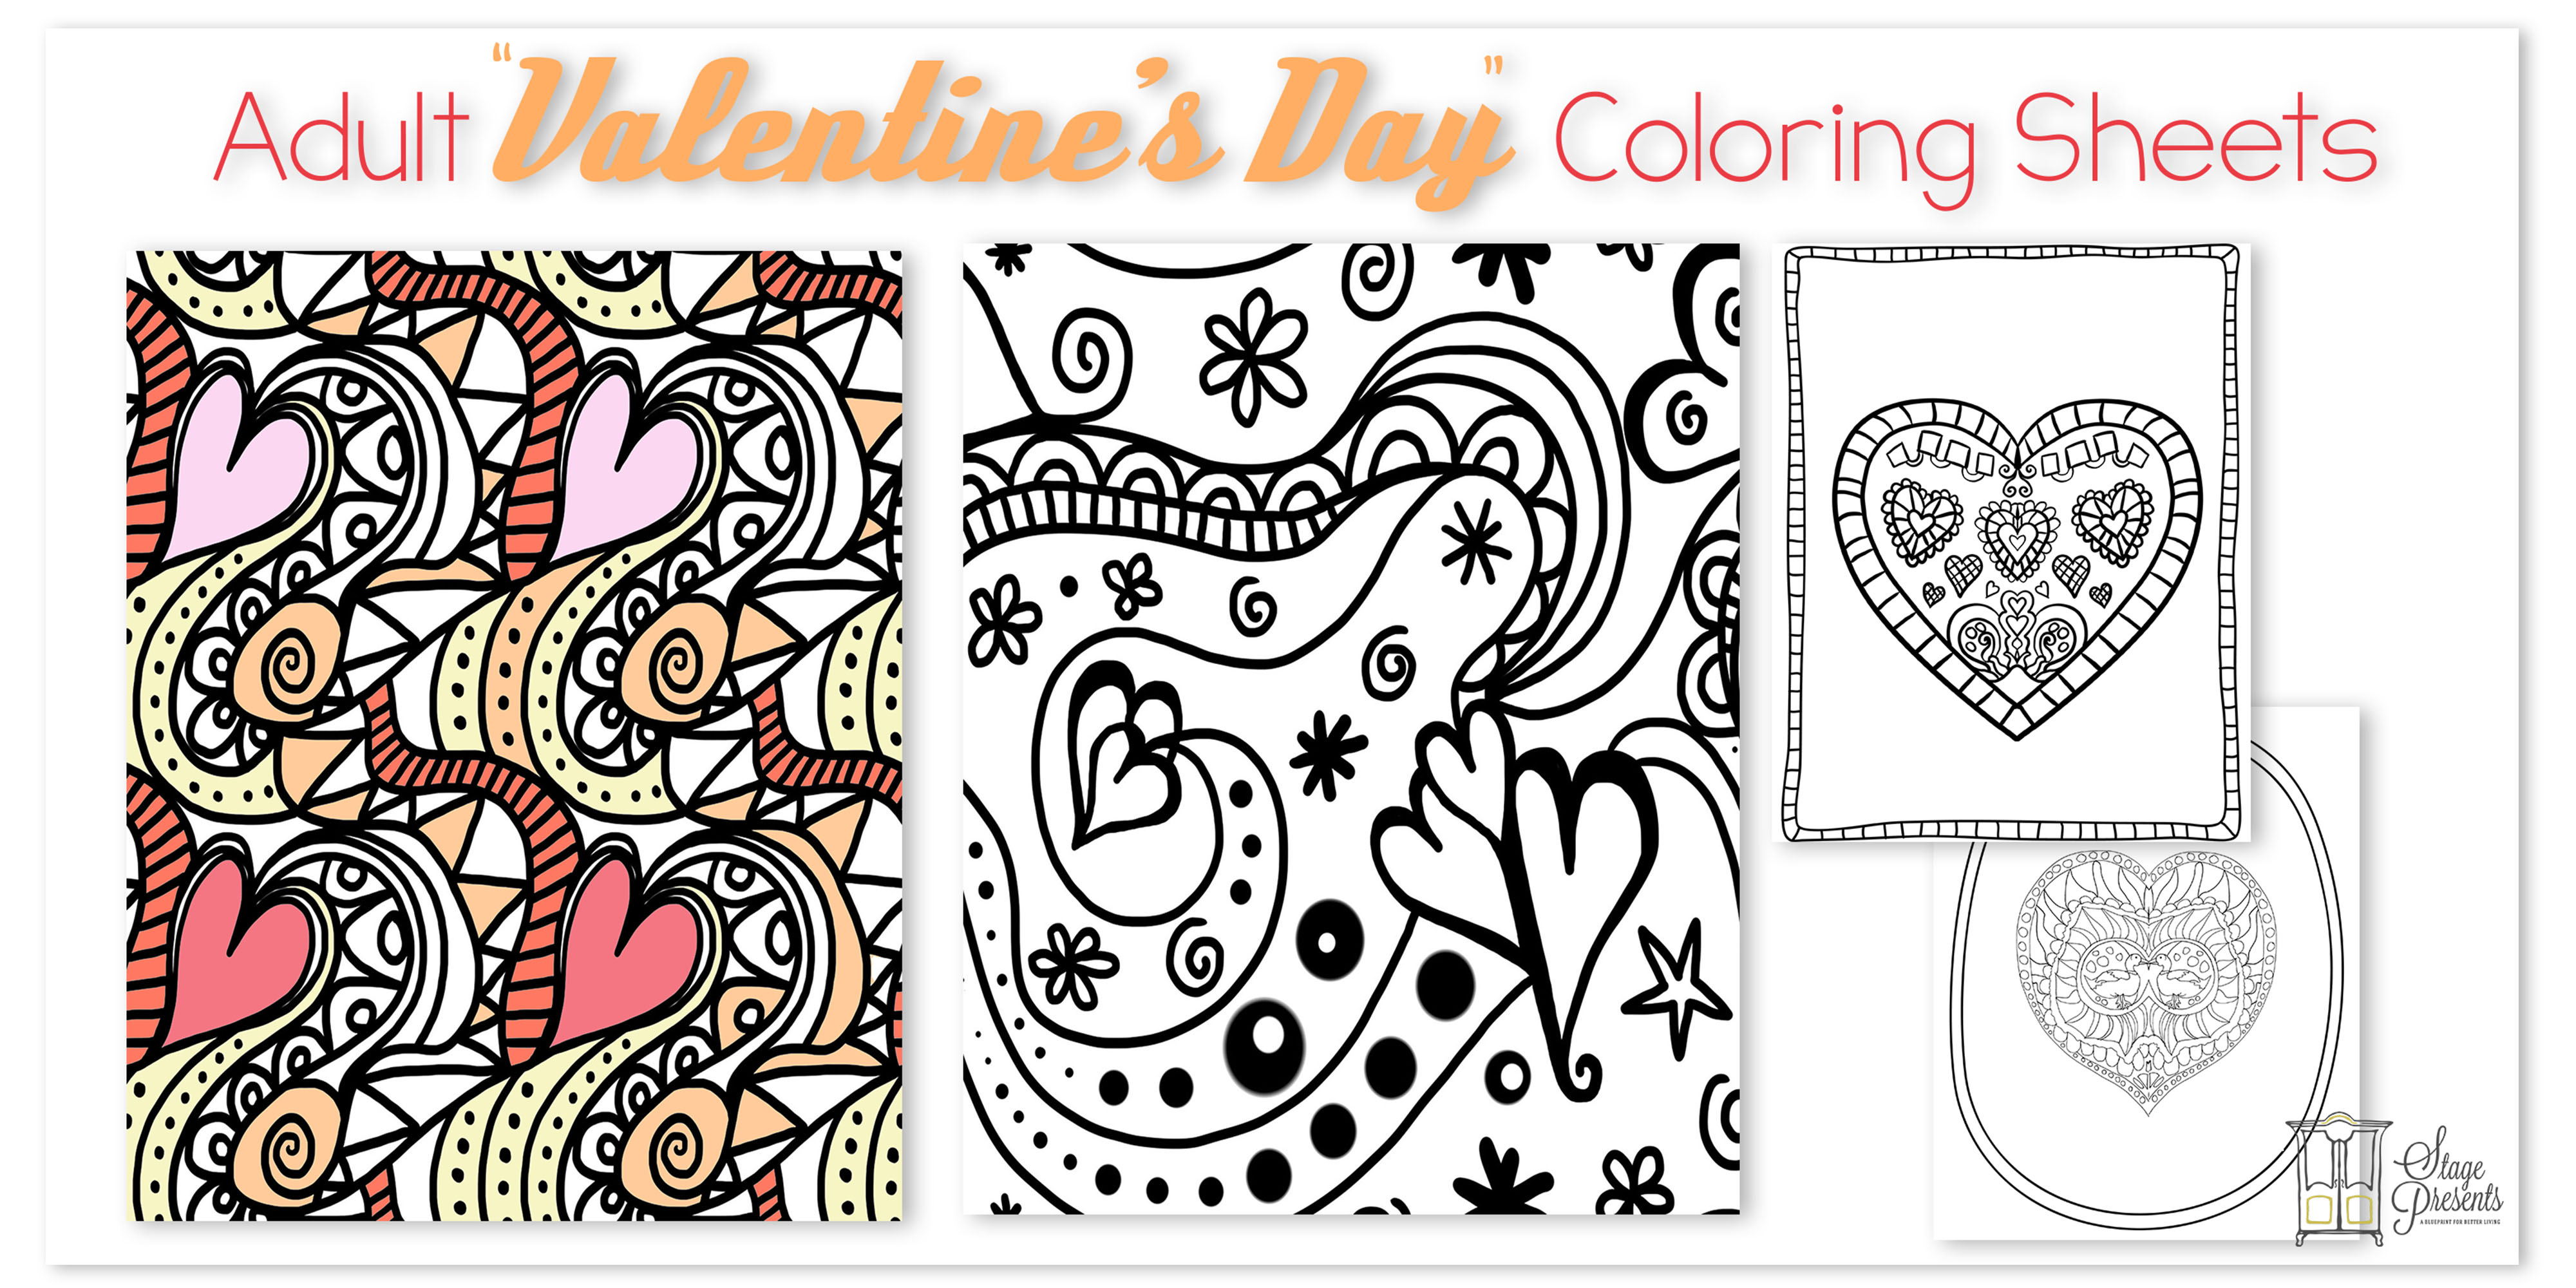 Valentines Day Coloring Pages For Adults Adult Valentines Day Coloring Sheets Stage Presents